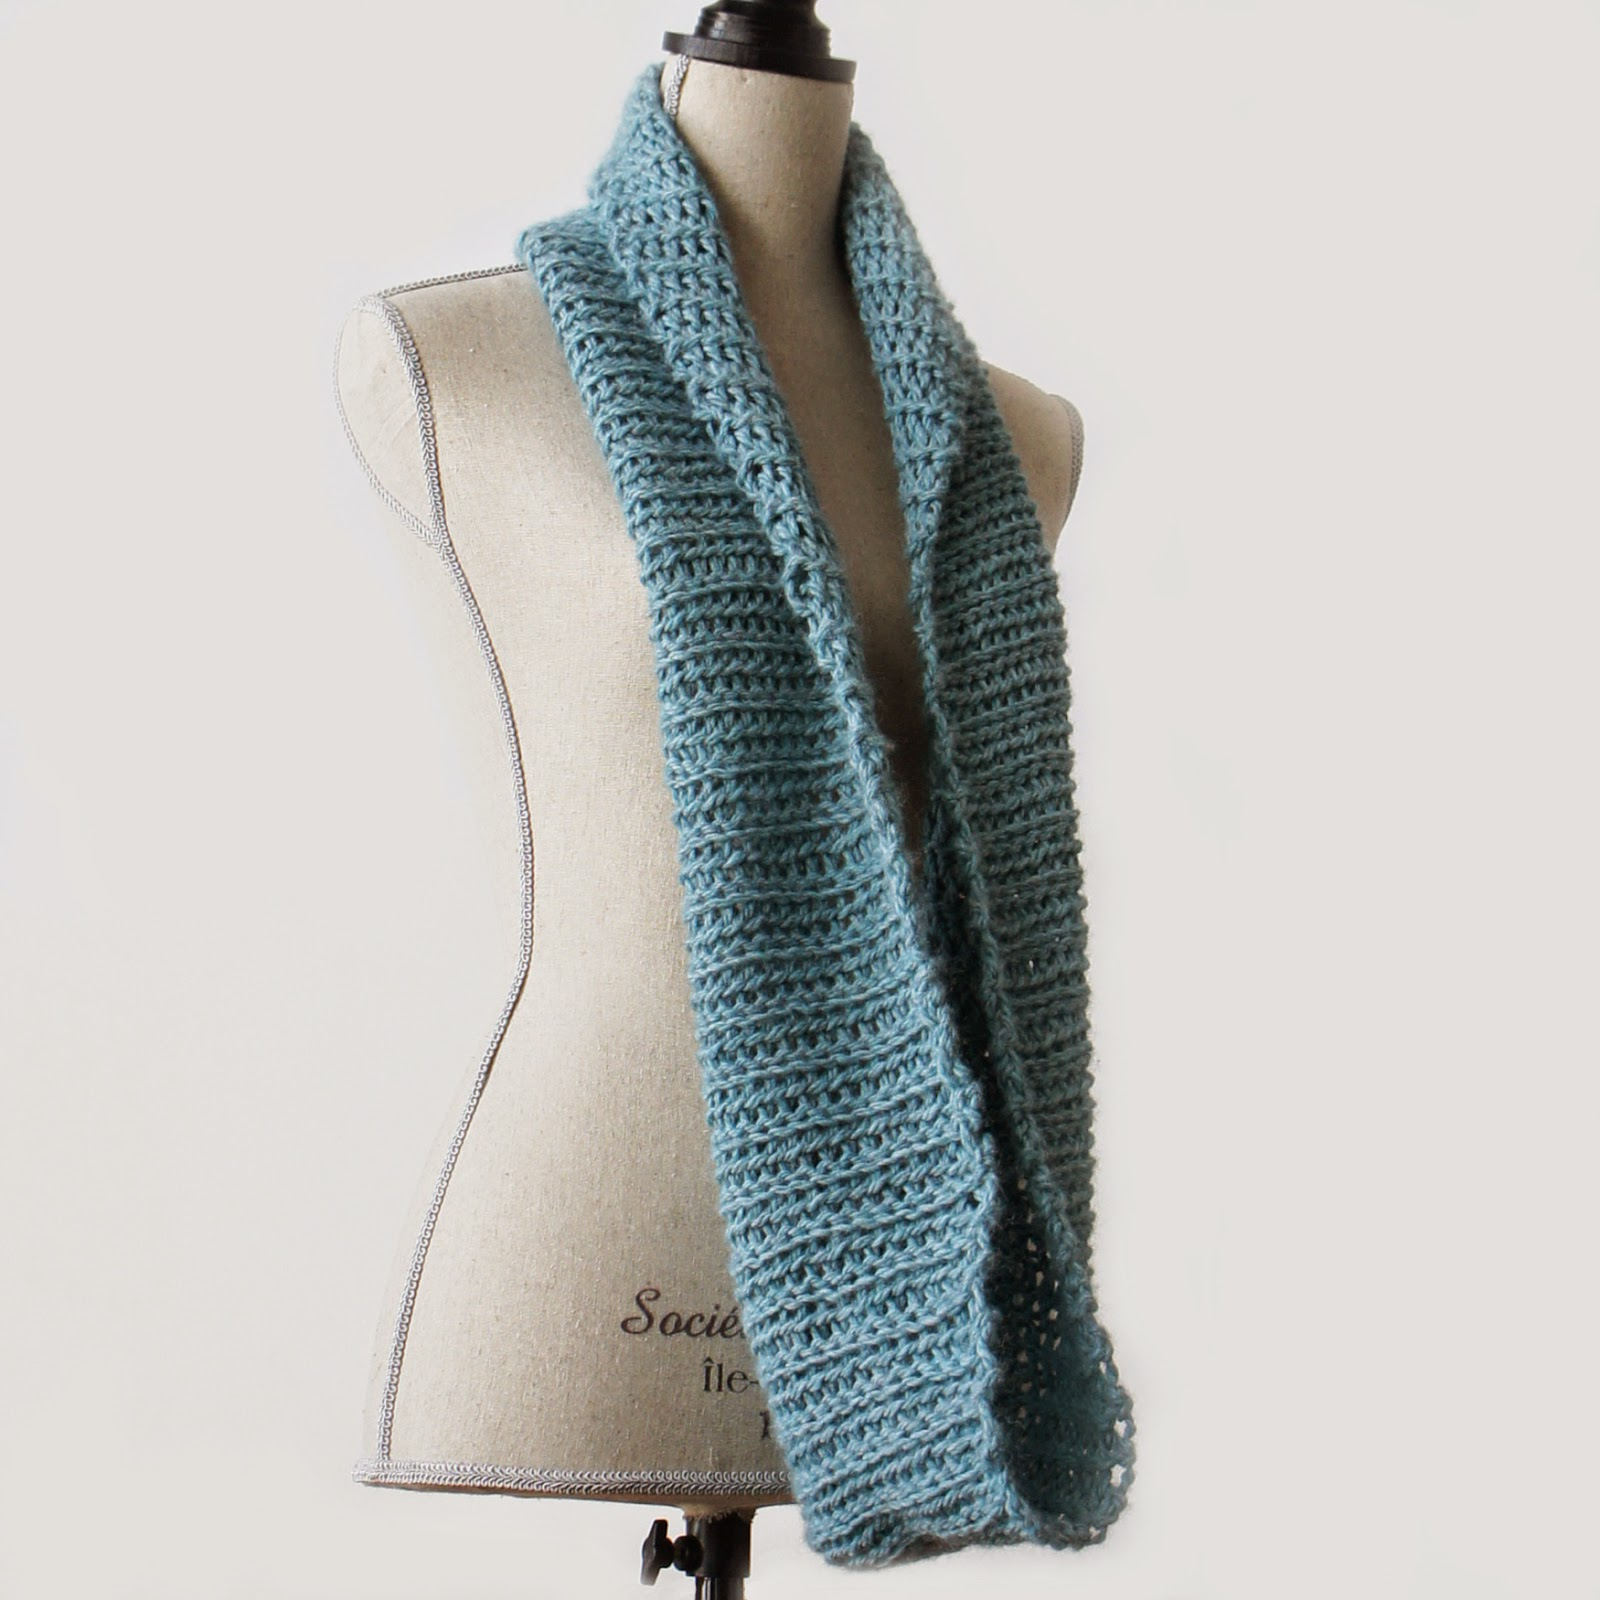 http://www.ravelry.com/patterns/library/blue-mist-cowl